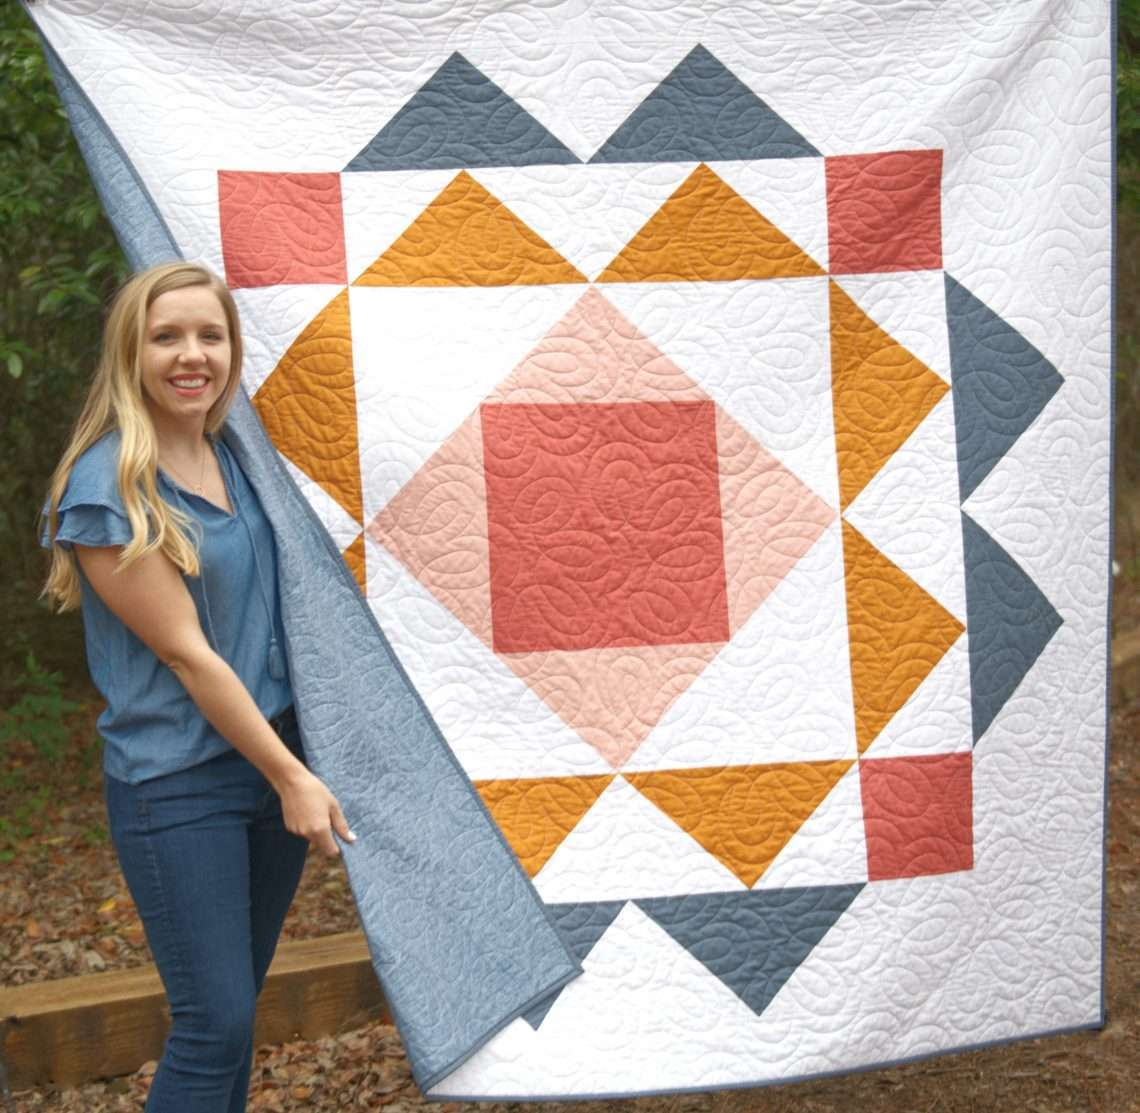 Paradigm quilt pattern homemade emily jane, modern quilt pattern featuring large blocks in a modern design, throw size quilt with big fabric pieces